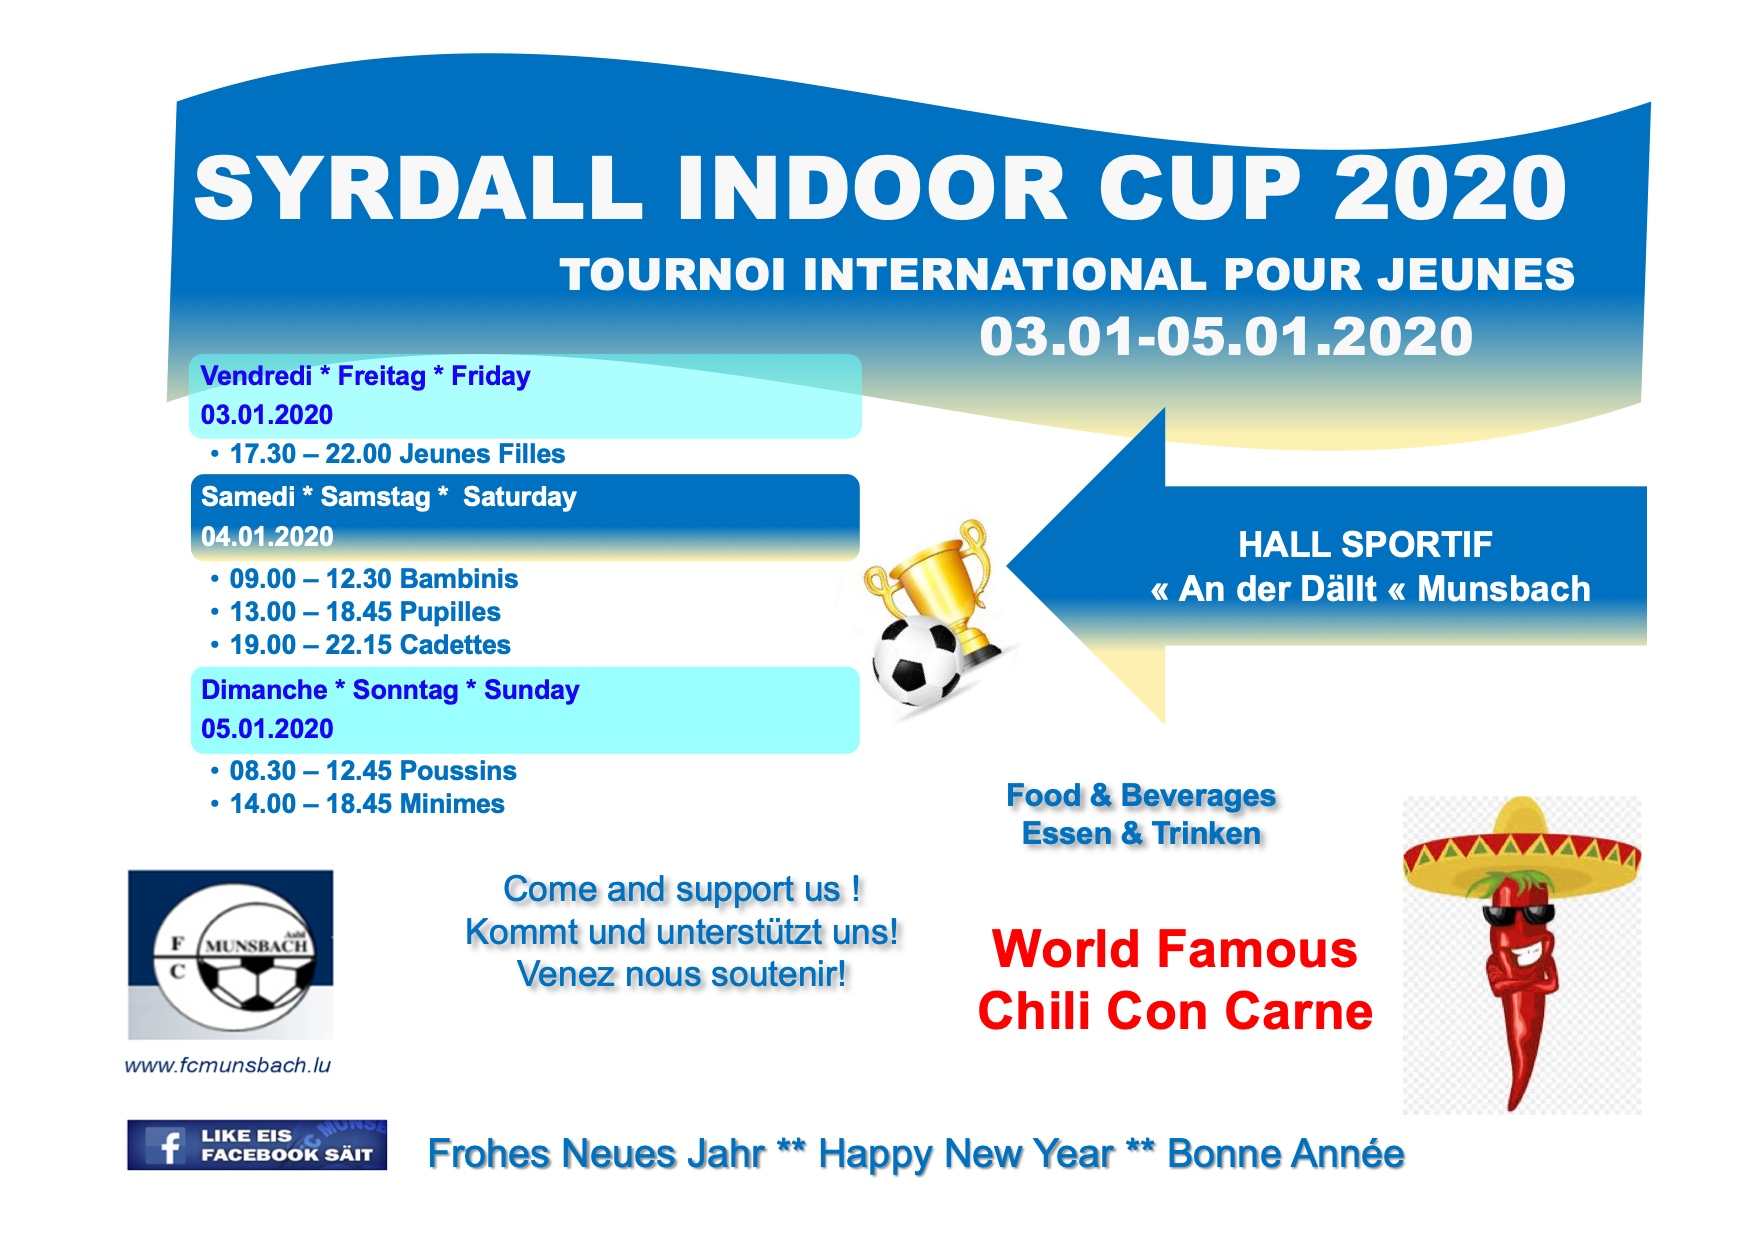 SYRDALL INDOOR CUP 2020